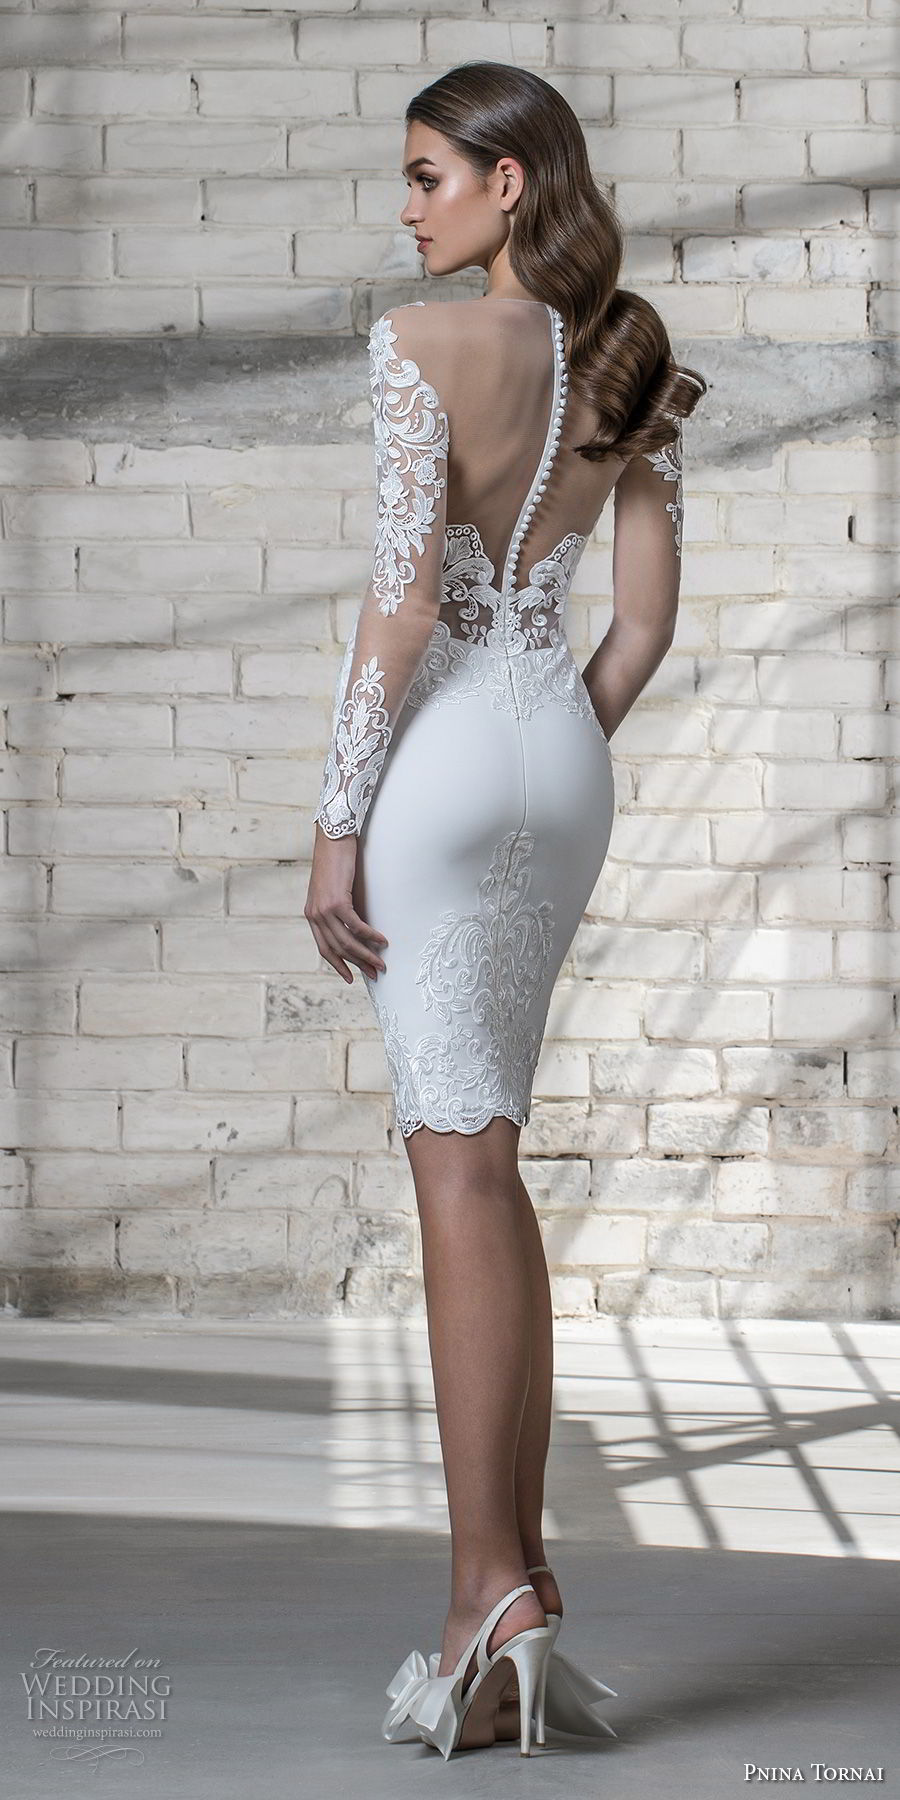 pnina tornai 2019 love bridal long sleeves deep plunging sweetheart neckline heavily embellished bodice miniskirt above the knee short wedding dress sheer button back (15) bv